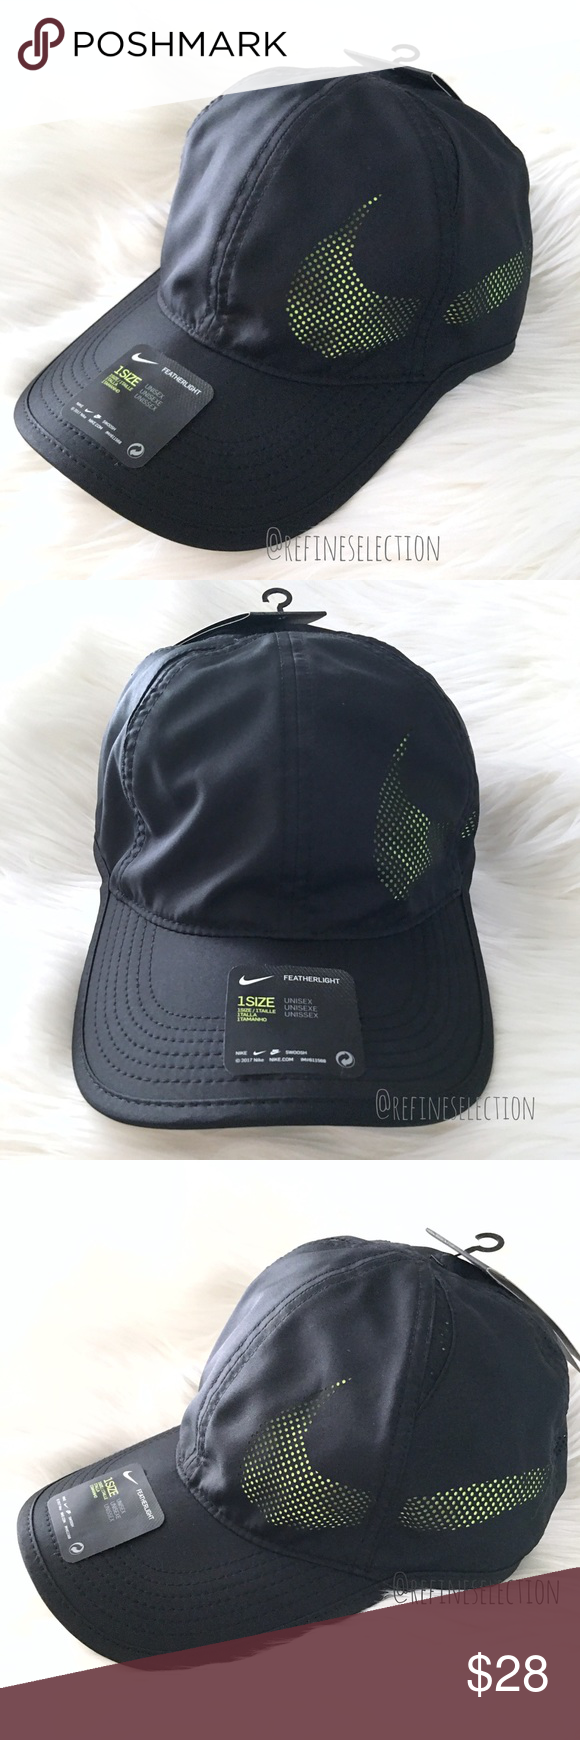 best service ce244 63329 Nike Aerobill Featherlight Perforated Hat Cap Brand new with tags, Adult,  Unisex, One